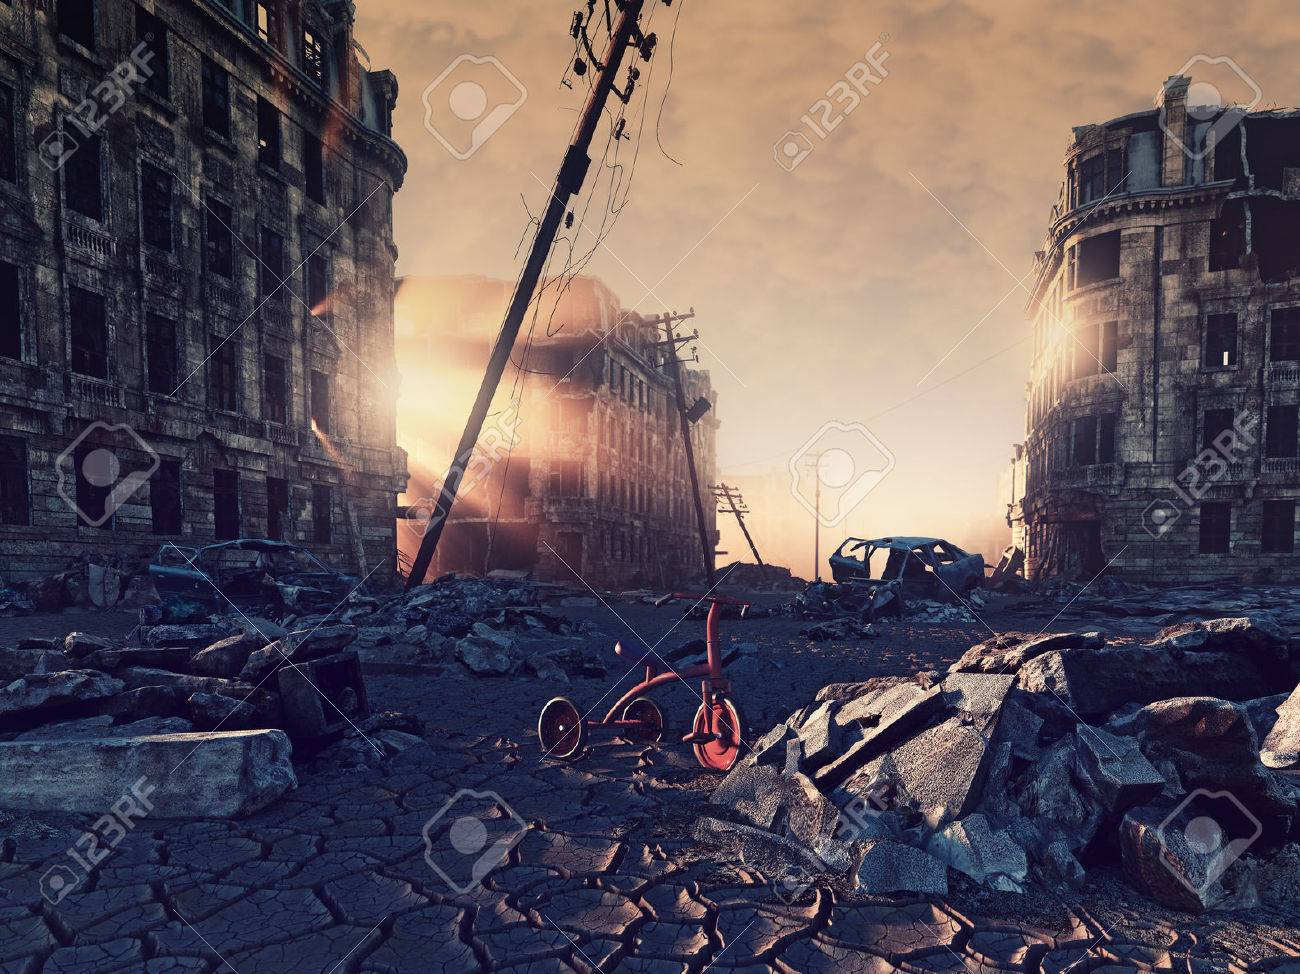 ruins of a city with a crack in the street. 3d illustration concept - 64633955